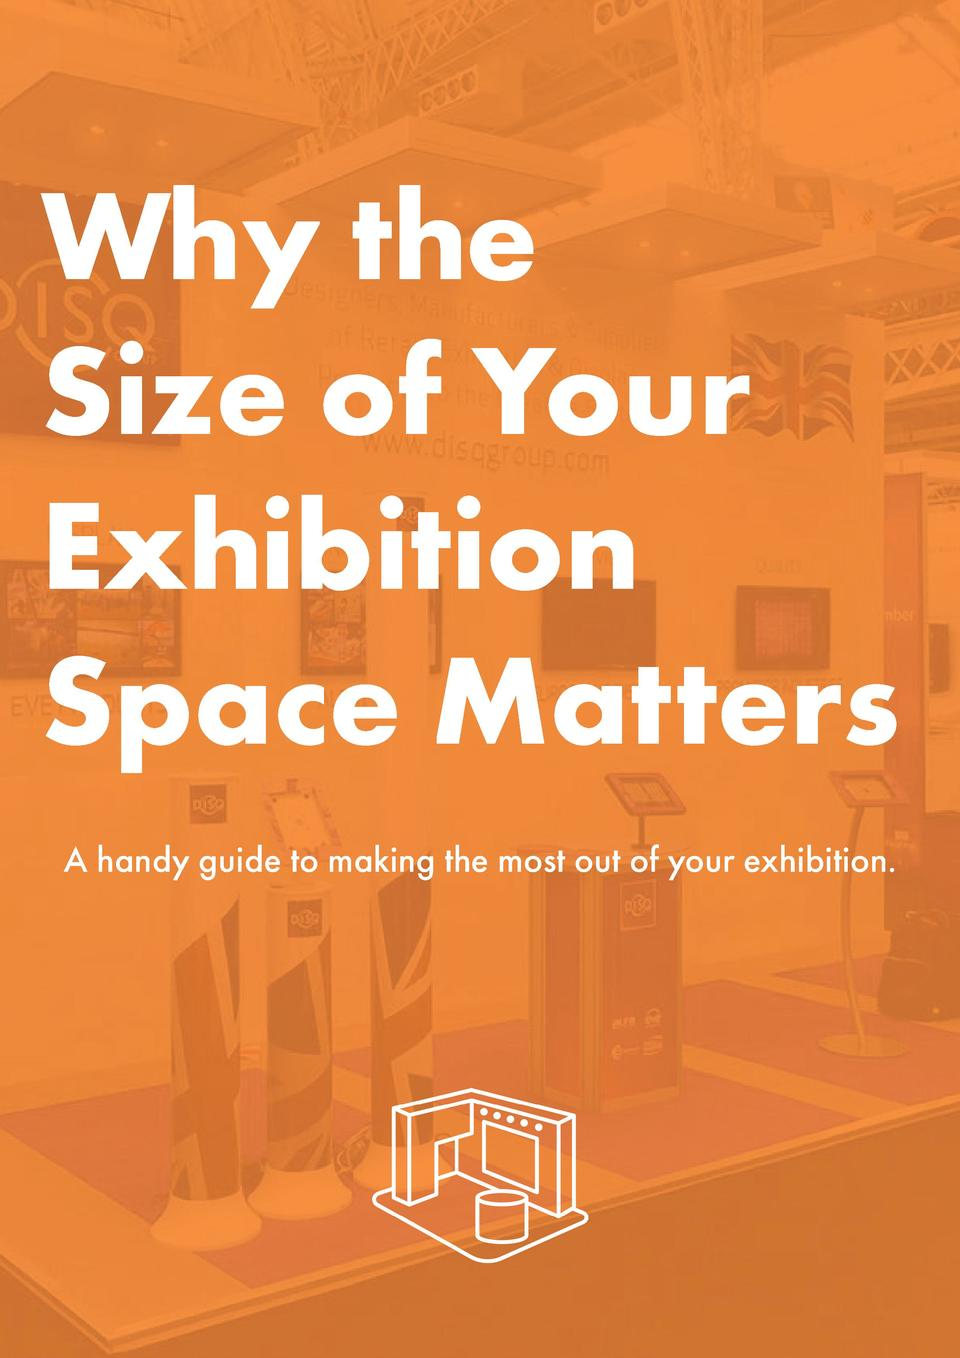 Why the Size of Your Exhibition Space Matters A handy guide to making the most out of your exhibition.